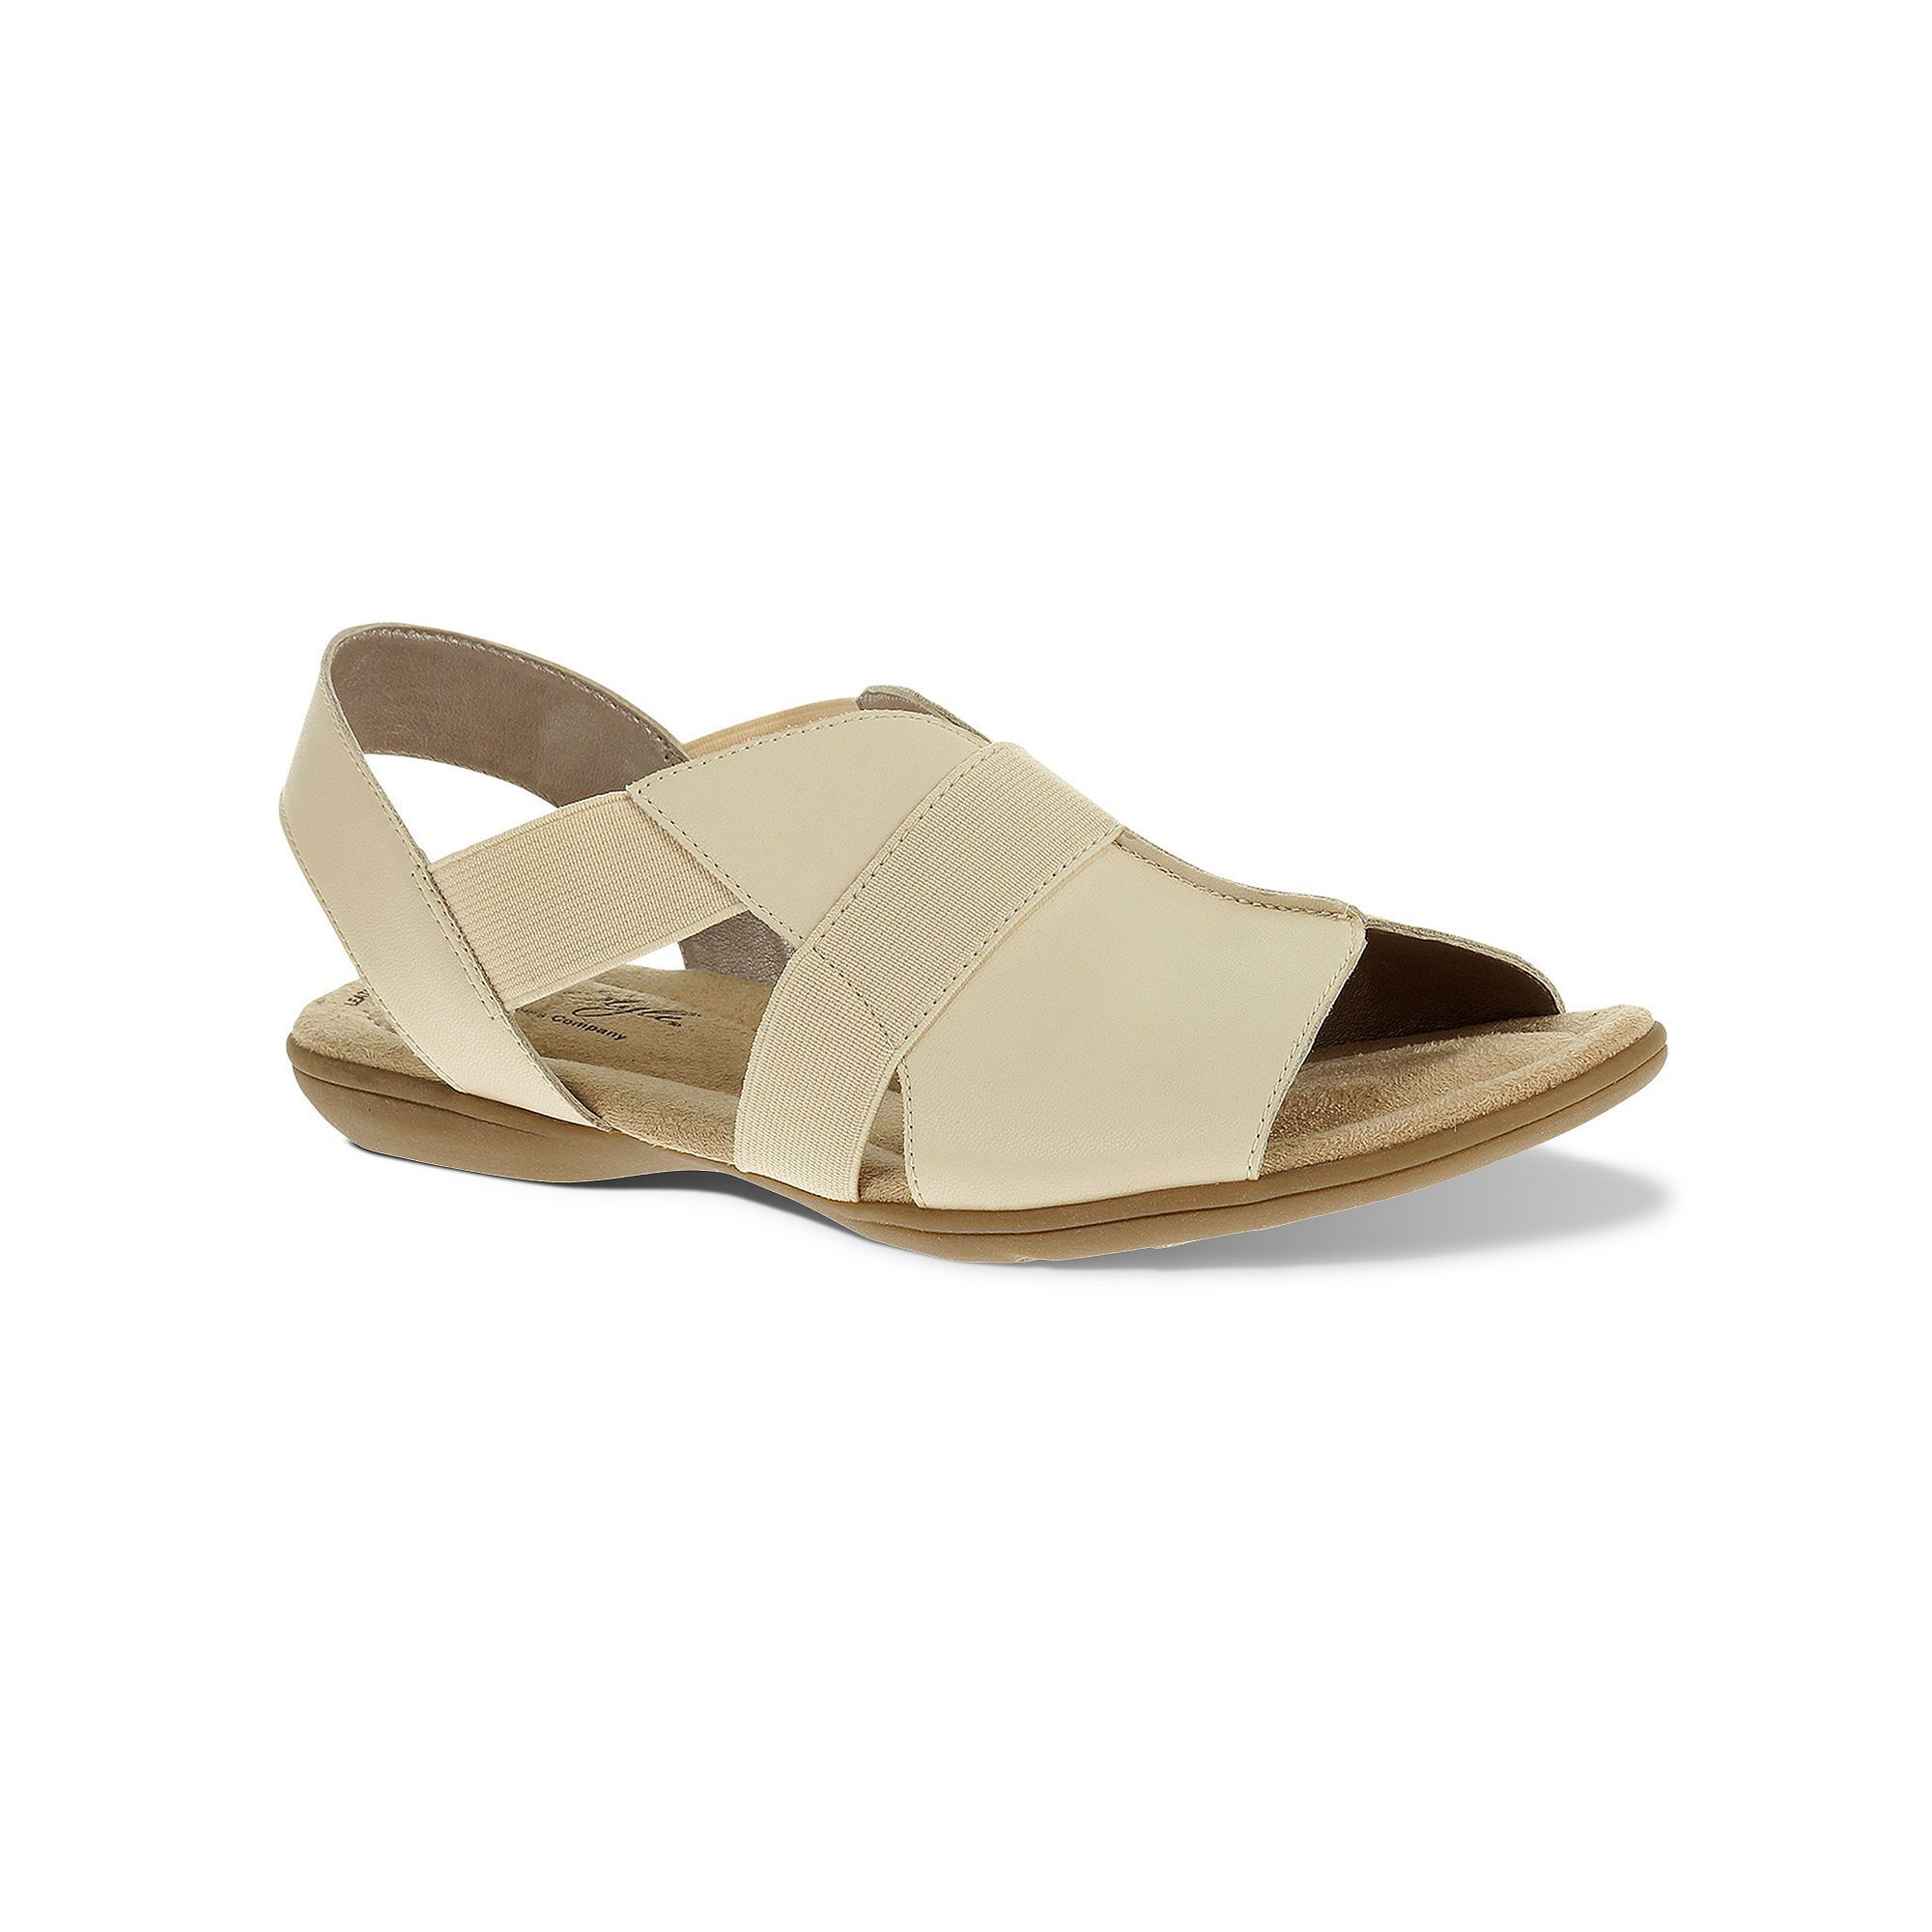 Soft Style By Hush Puppies Eves Women S Slip On Sandals Hush